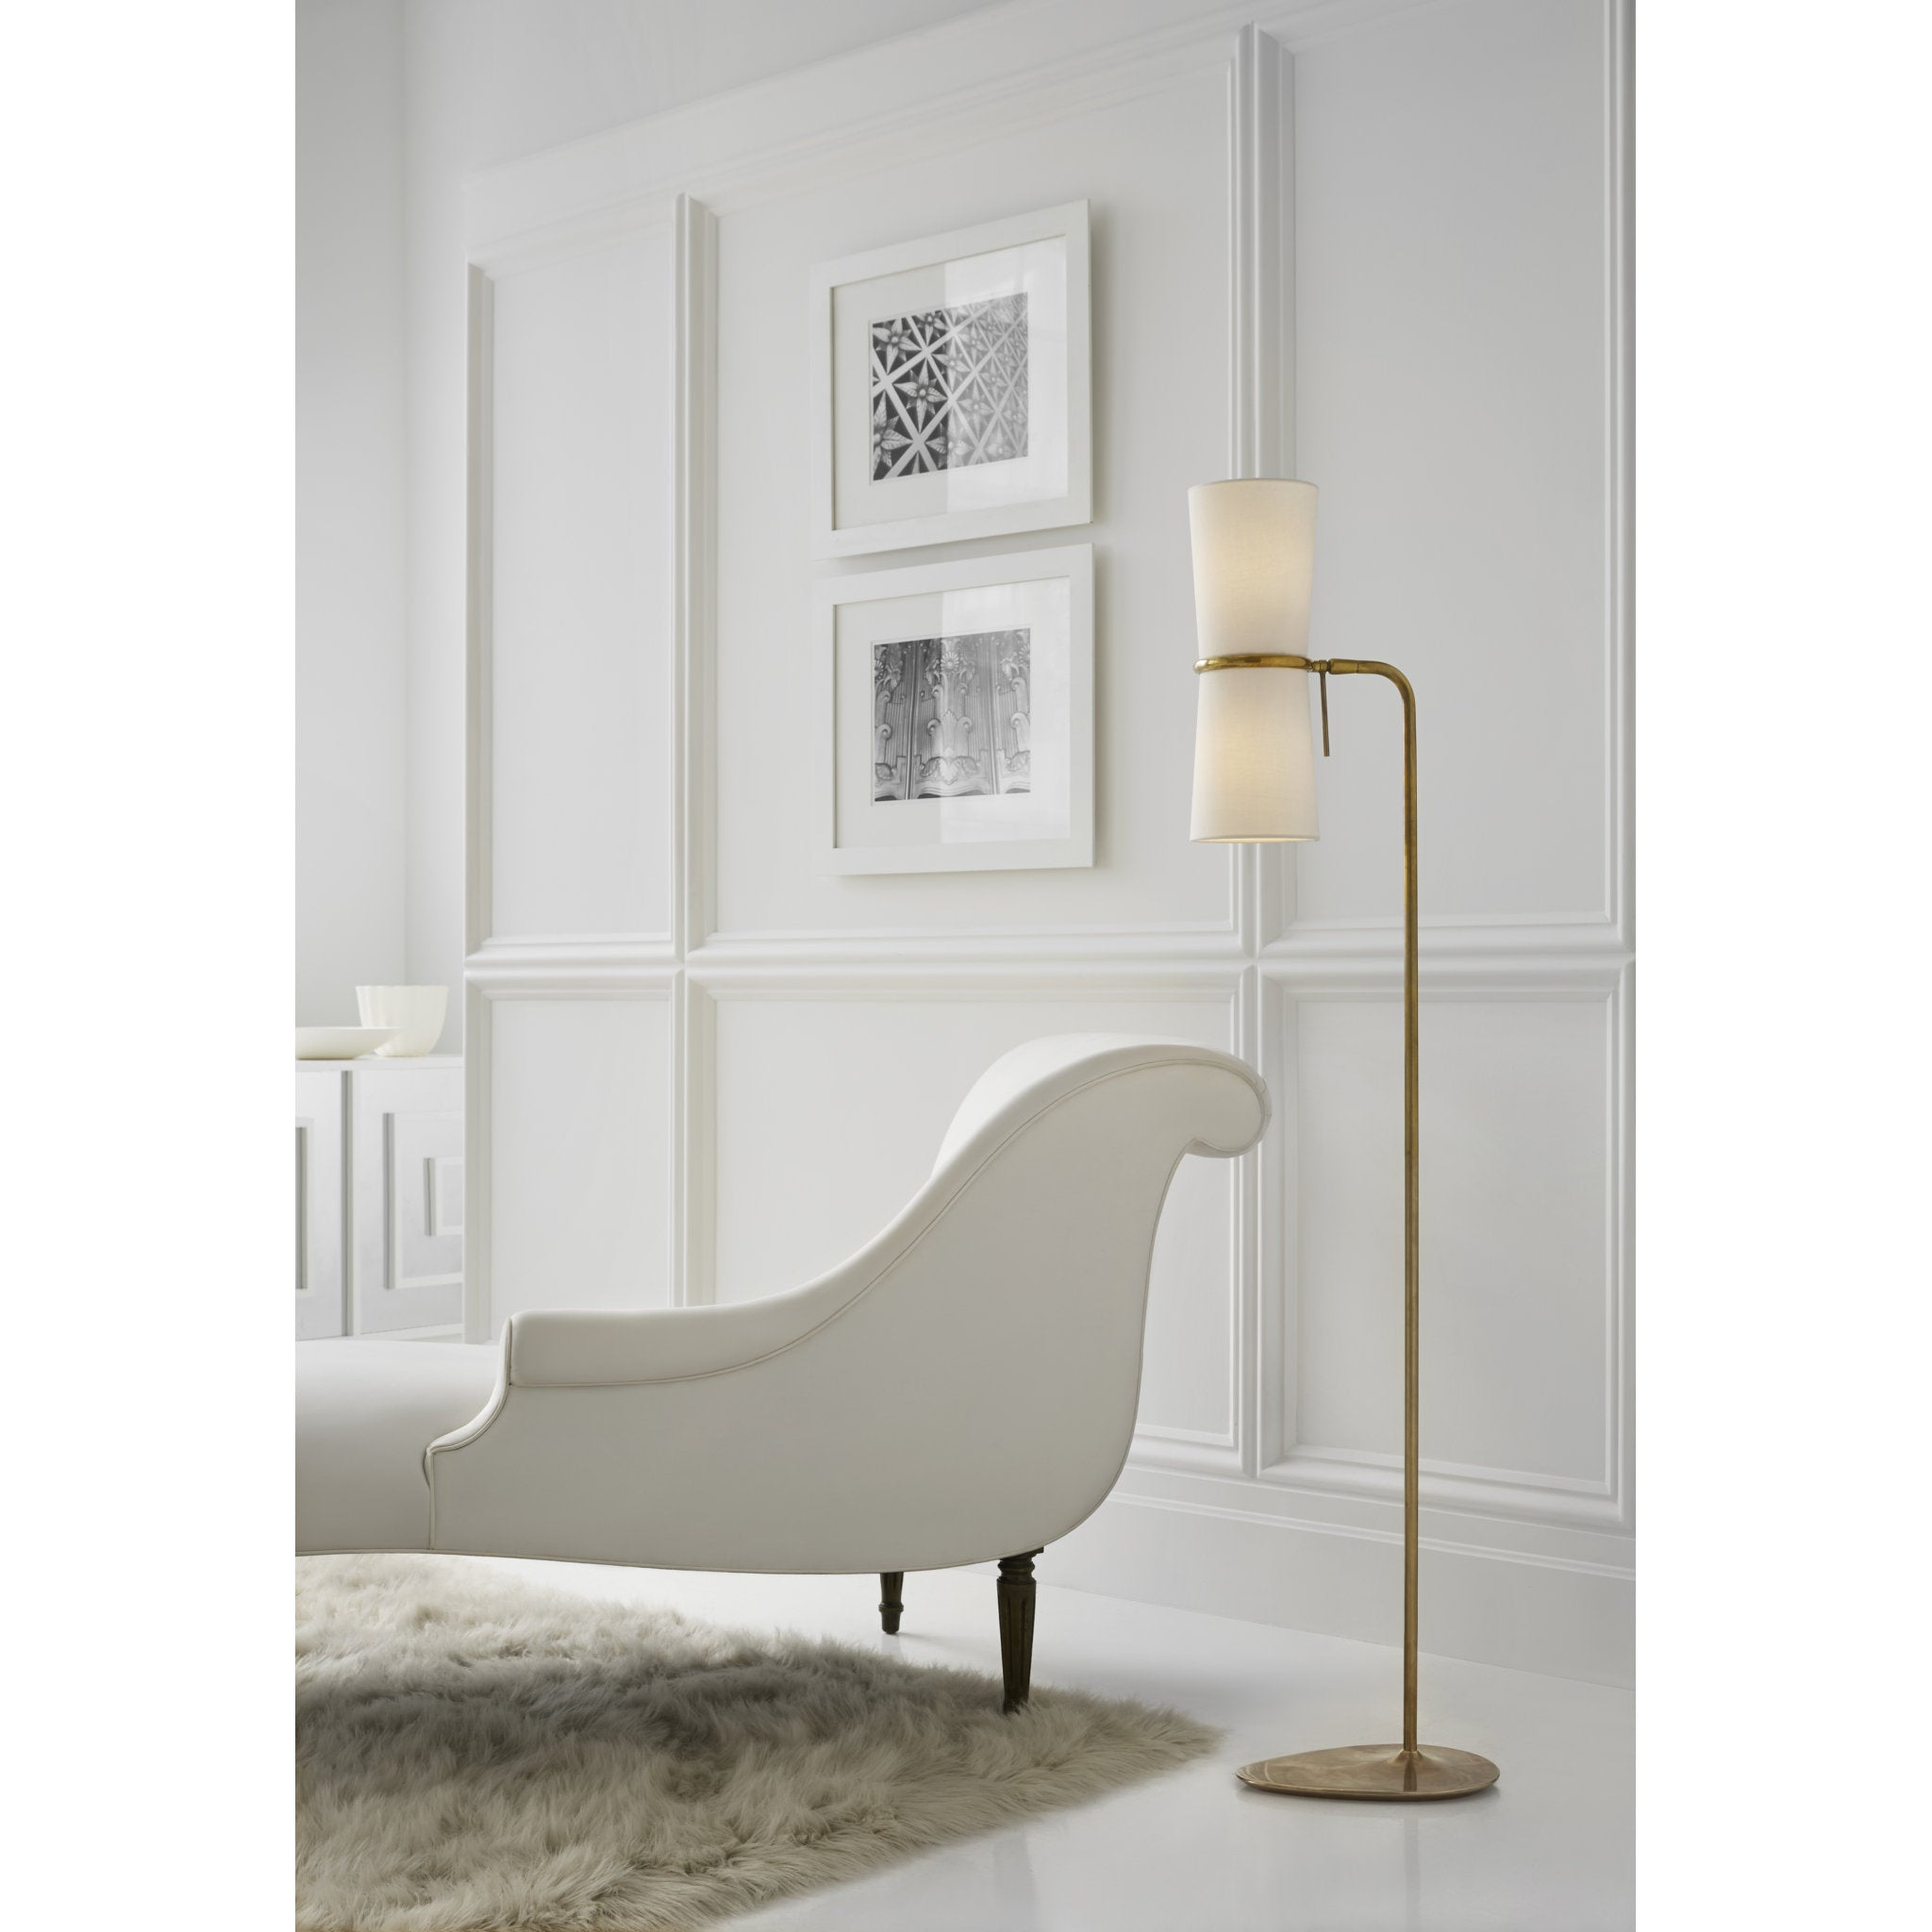 Picture of: Visual Comfort Arn 1003hab L Aerin Clarkson Floor Lamp In Hand Rubbed Foundry Lighting